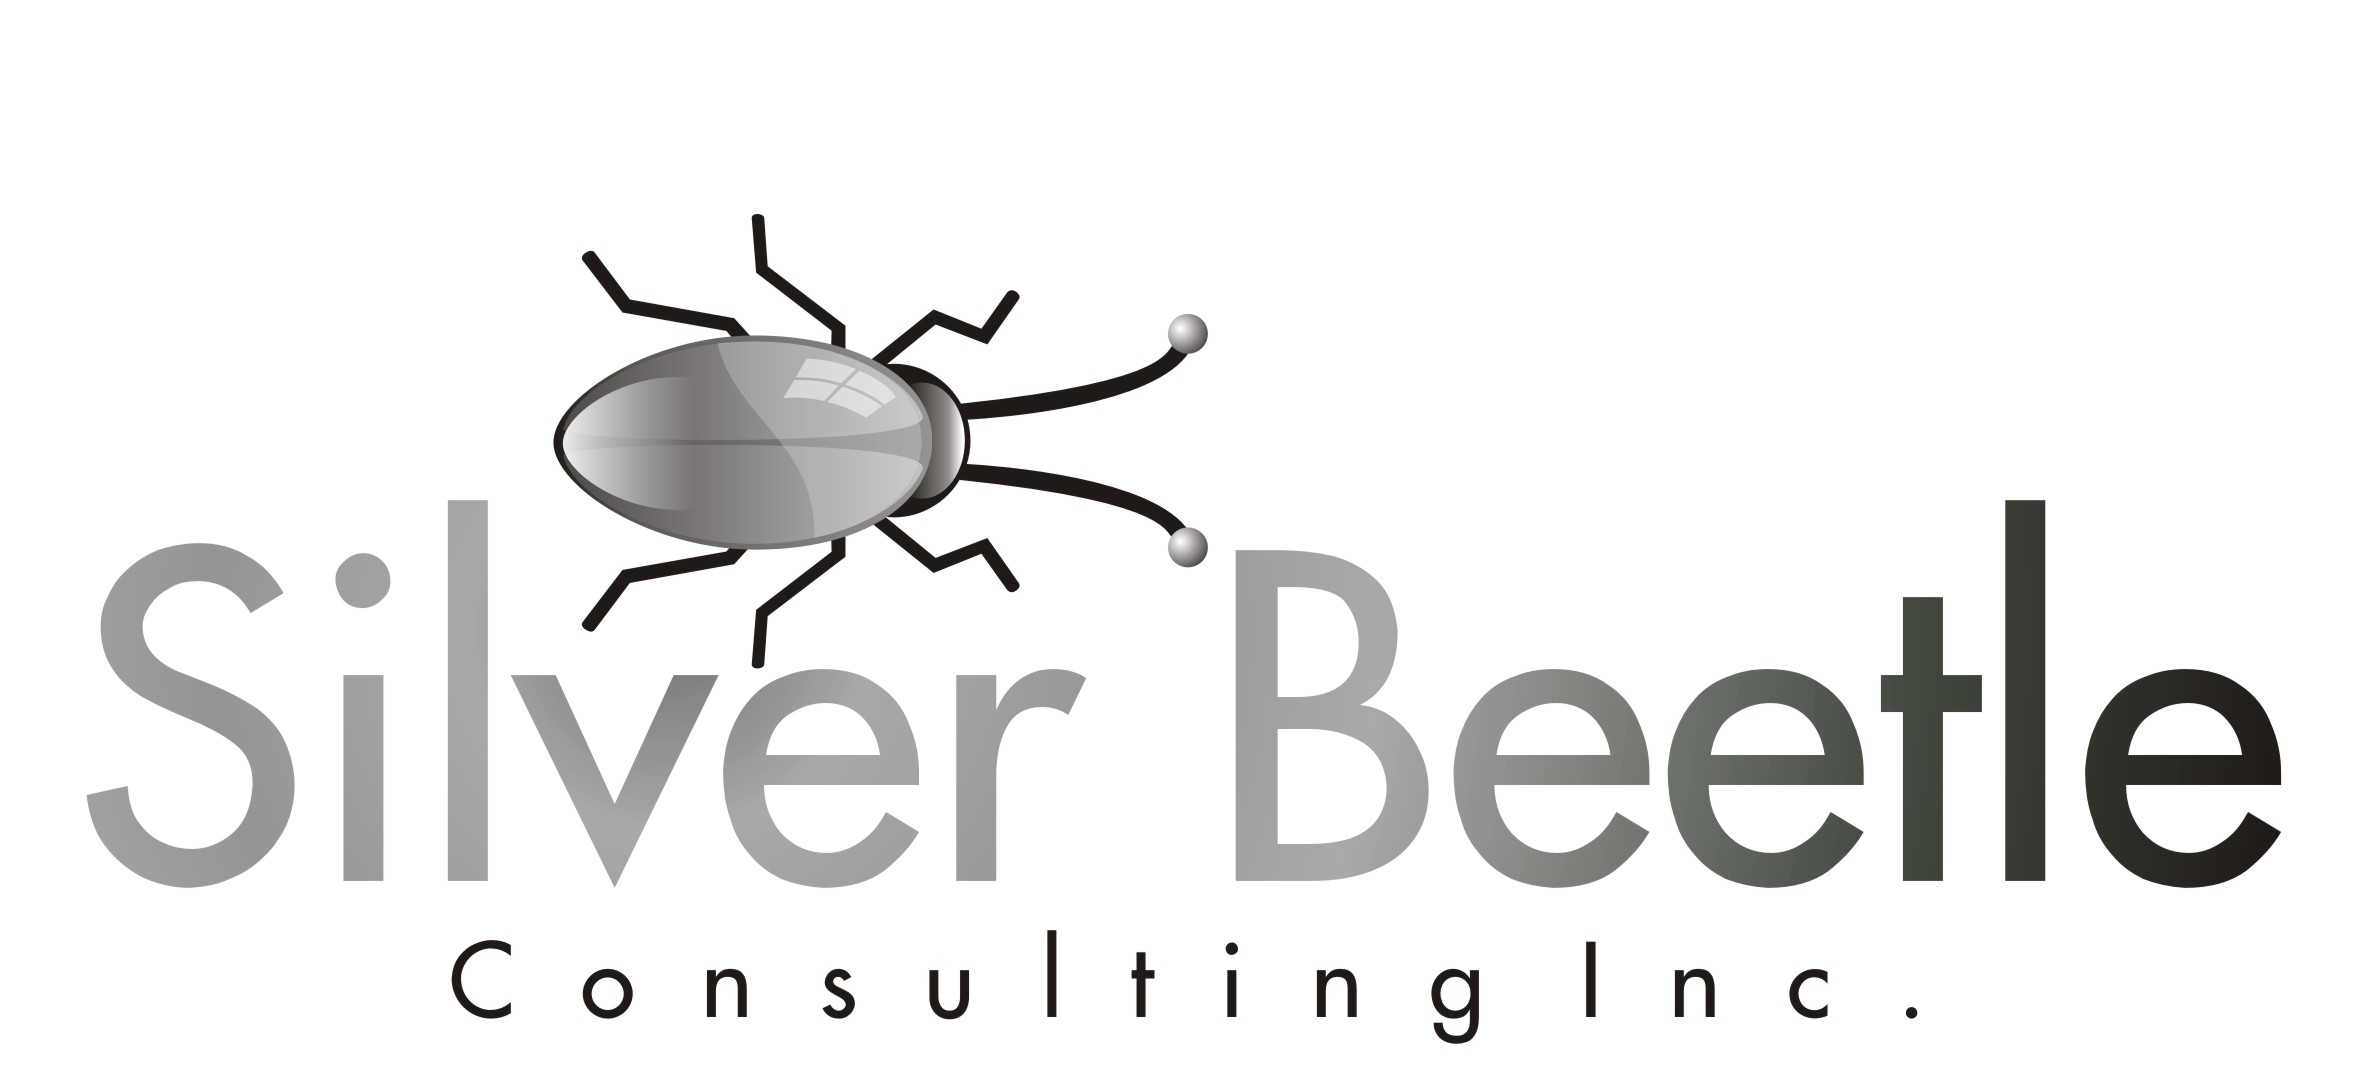 Logo Design by Private User - Entry No. 15 in the Logo Design Contest Silver Beetle Consulting Inc. Logo Design.